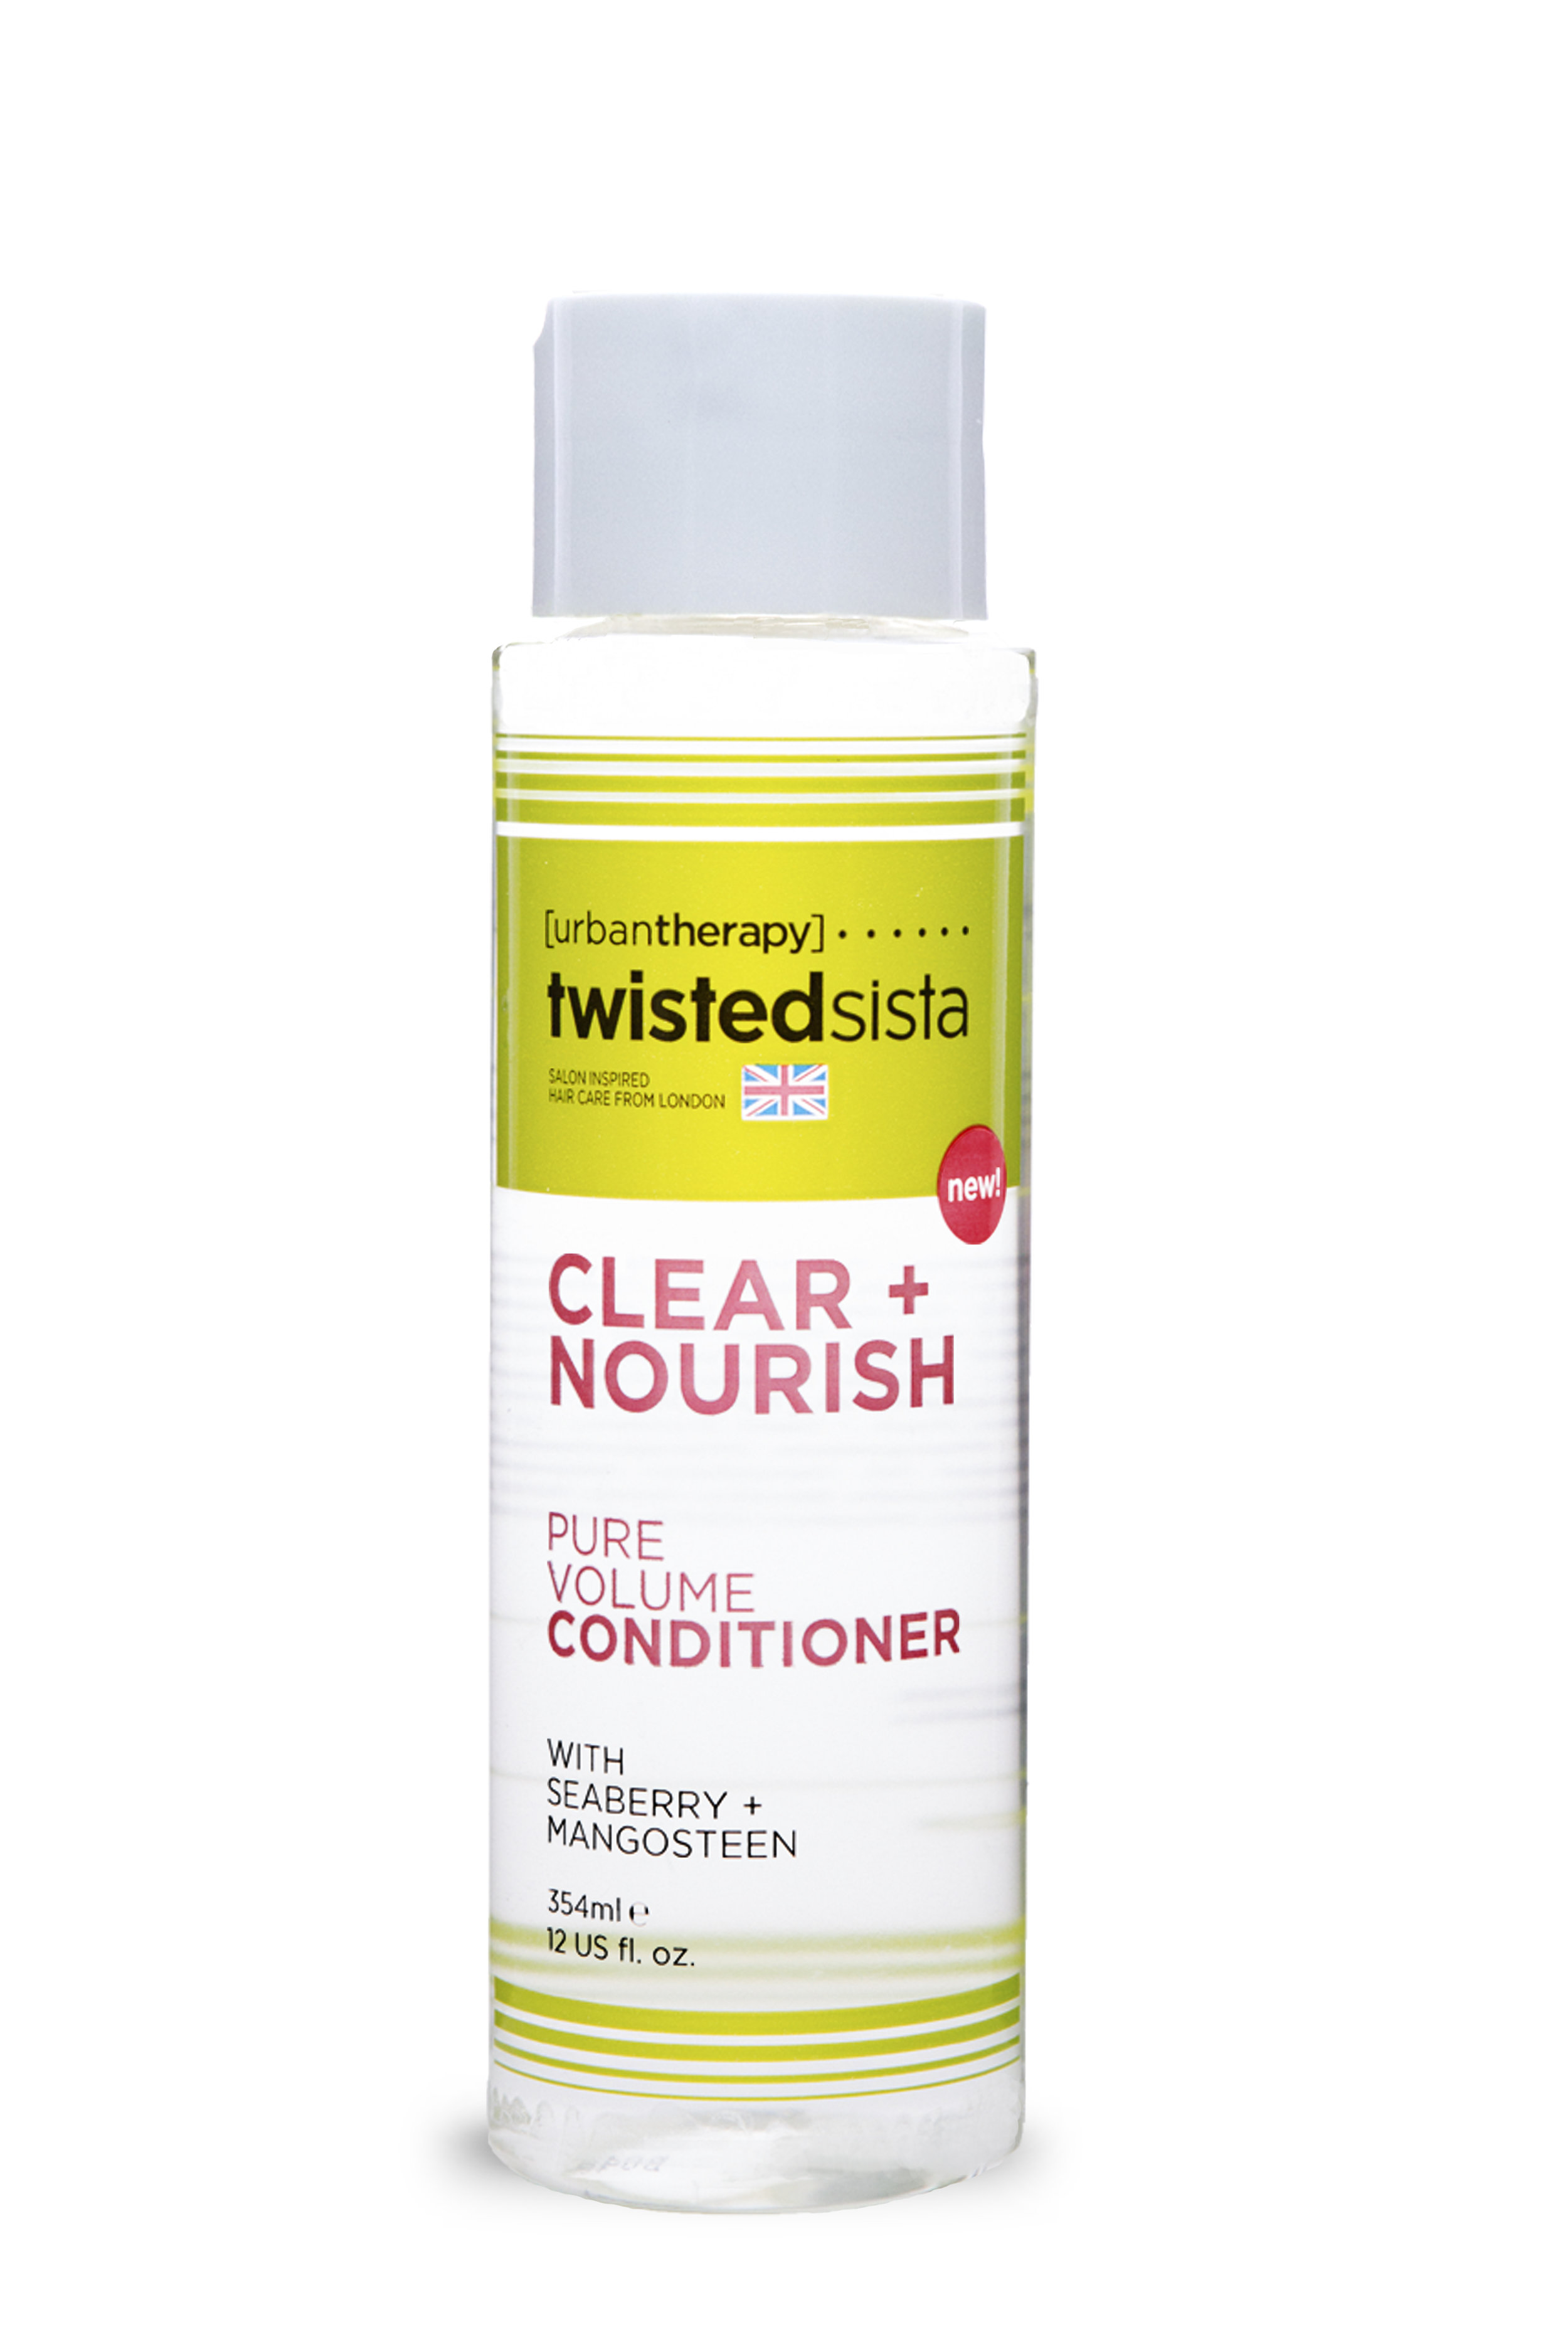 PURE VOLUME CONDITIONER - DESCRIPTION:Specifically formulated for thicker hair types, this conditioner helps to seal in moisture preventing future drying and split ends.USE: Apply to wet cleansed hair. Section hair in 4 and apply evenly from roots to tips. Detangle using a paddle brush starting at the ends and working your way up to the roots. Gently rinse after detangling.TIP: Always condition hair after cleansing to seal in moisture to ends to help prevent split ends.INGREDIENTS:Aqua (Water), Glycerin, Propylene Glycol, Sorbitol, Polyquaternium-11, Cetrimonium Chloride, Polyquaternium-10, Polysorbate-20, Panthenol, Saccharum Officinarum (Sugar Cane) Extract, Citrus Medica Limonum (Lemon) Fruit Extract, Betaine, Hexylene Glycol , Pyrus Malus (Apple) Fruit Extract, Camellia Sinensis (Green Tea) Leaf Extract, Hexapeptide-11, Vaccinium Myrtillus Fruit Extract, Acer Saccharinum (Sugar Maple) Extract, Citrus Aurantium Dulcis (Orange) Fruit Extract, Superoxide Dismutase, Foeniculum Vulgare (Fennel) Seed Extract, Visnaga Vera Fruit / Stem Extract, Hippophaë Rhamnoides (Sea Buckthorn) Oil, Garcinia Mangostana (Mangosteen) Peel Extract, Carthamus Tinctorius (Safflower) Seed Oil, Oenothera Biennis (Evening Primrose) Oil, Parfum (Parfum), Phenoxyethanol, Benzoic Acid, Ethylhexylglycerin, Glycereth-2-Cocoate, Disodium EDTA, Citric Acid.